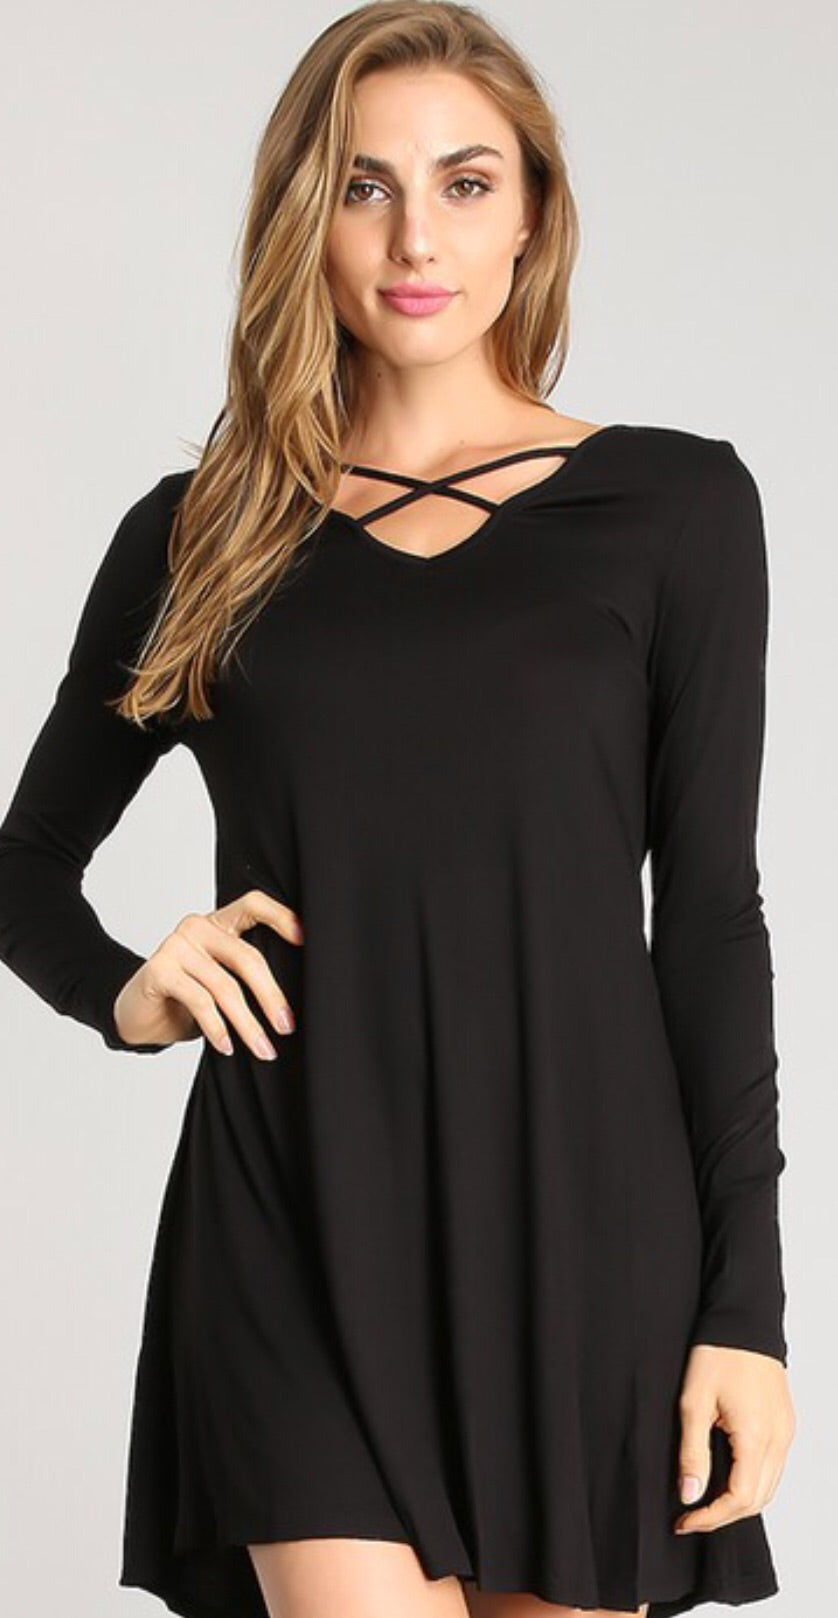 Women's Crisscrossed Tunic Dress